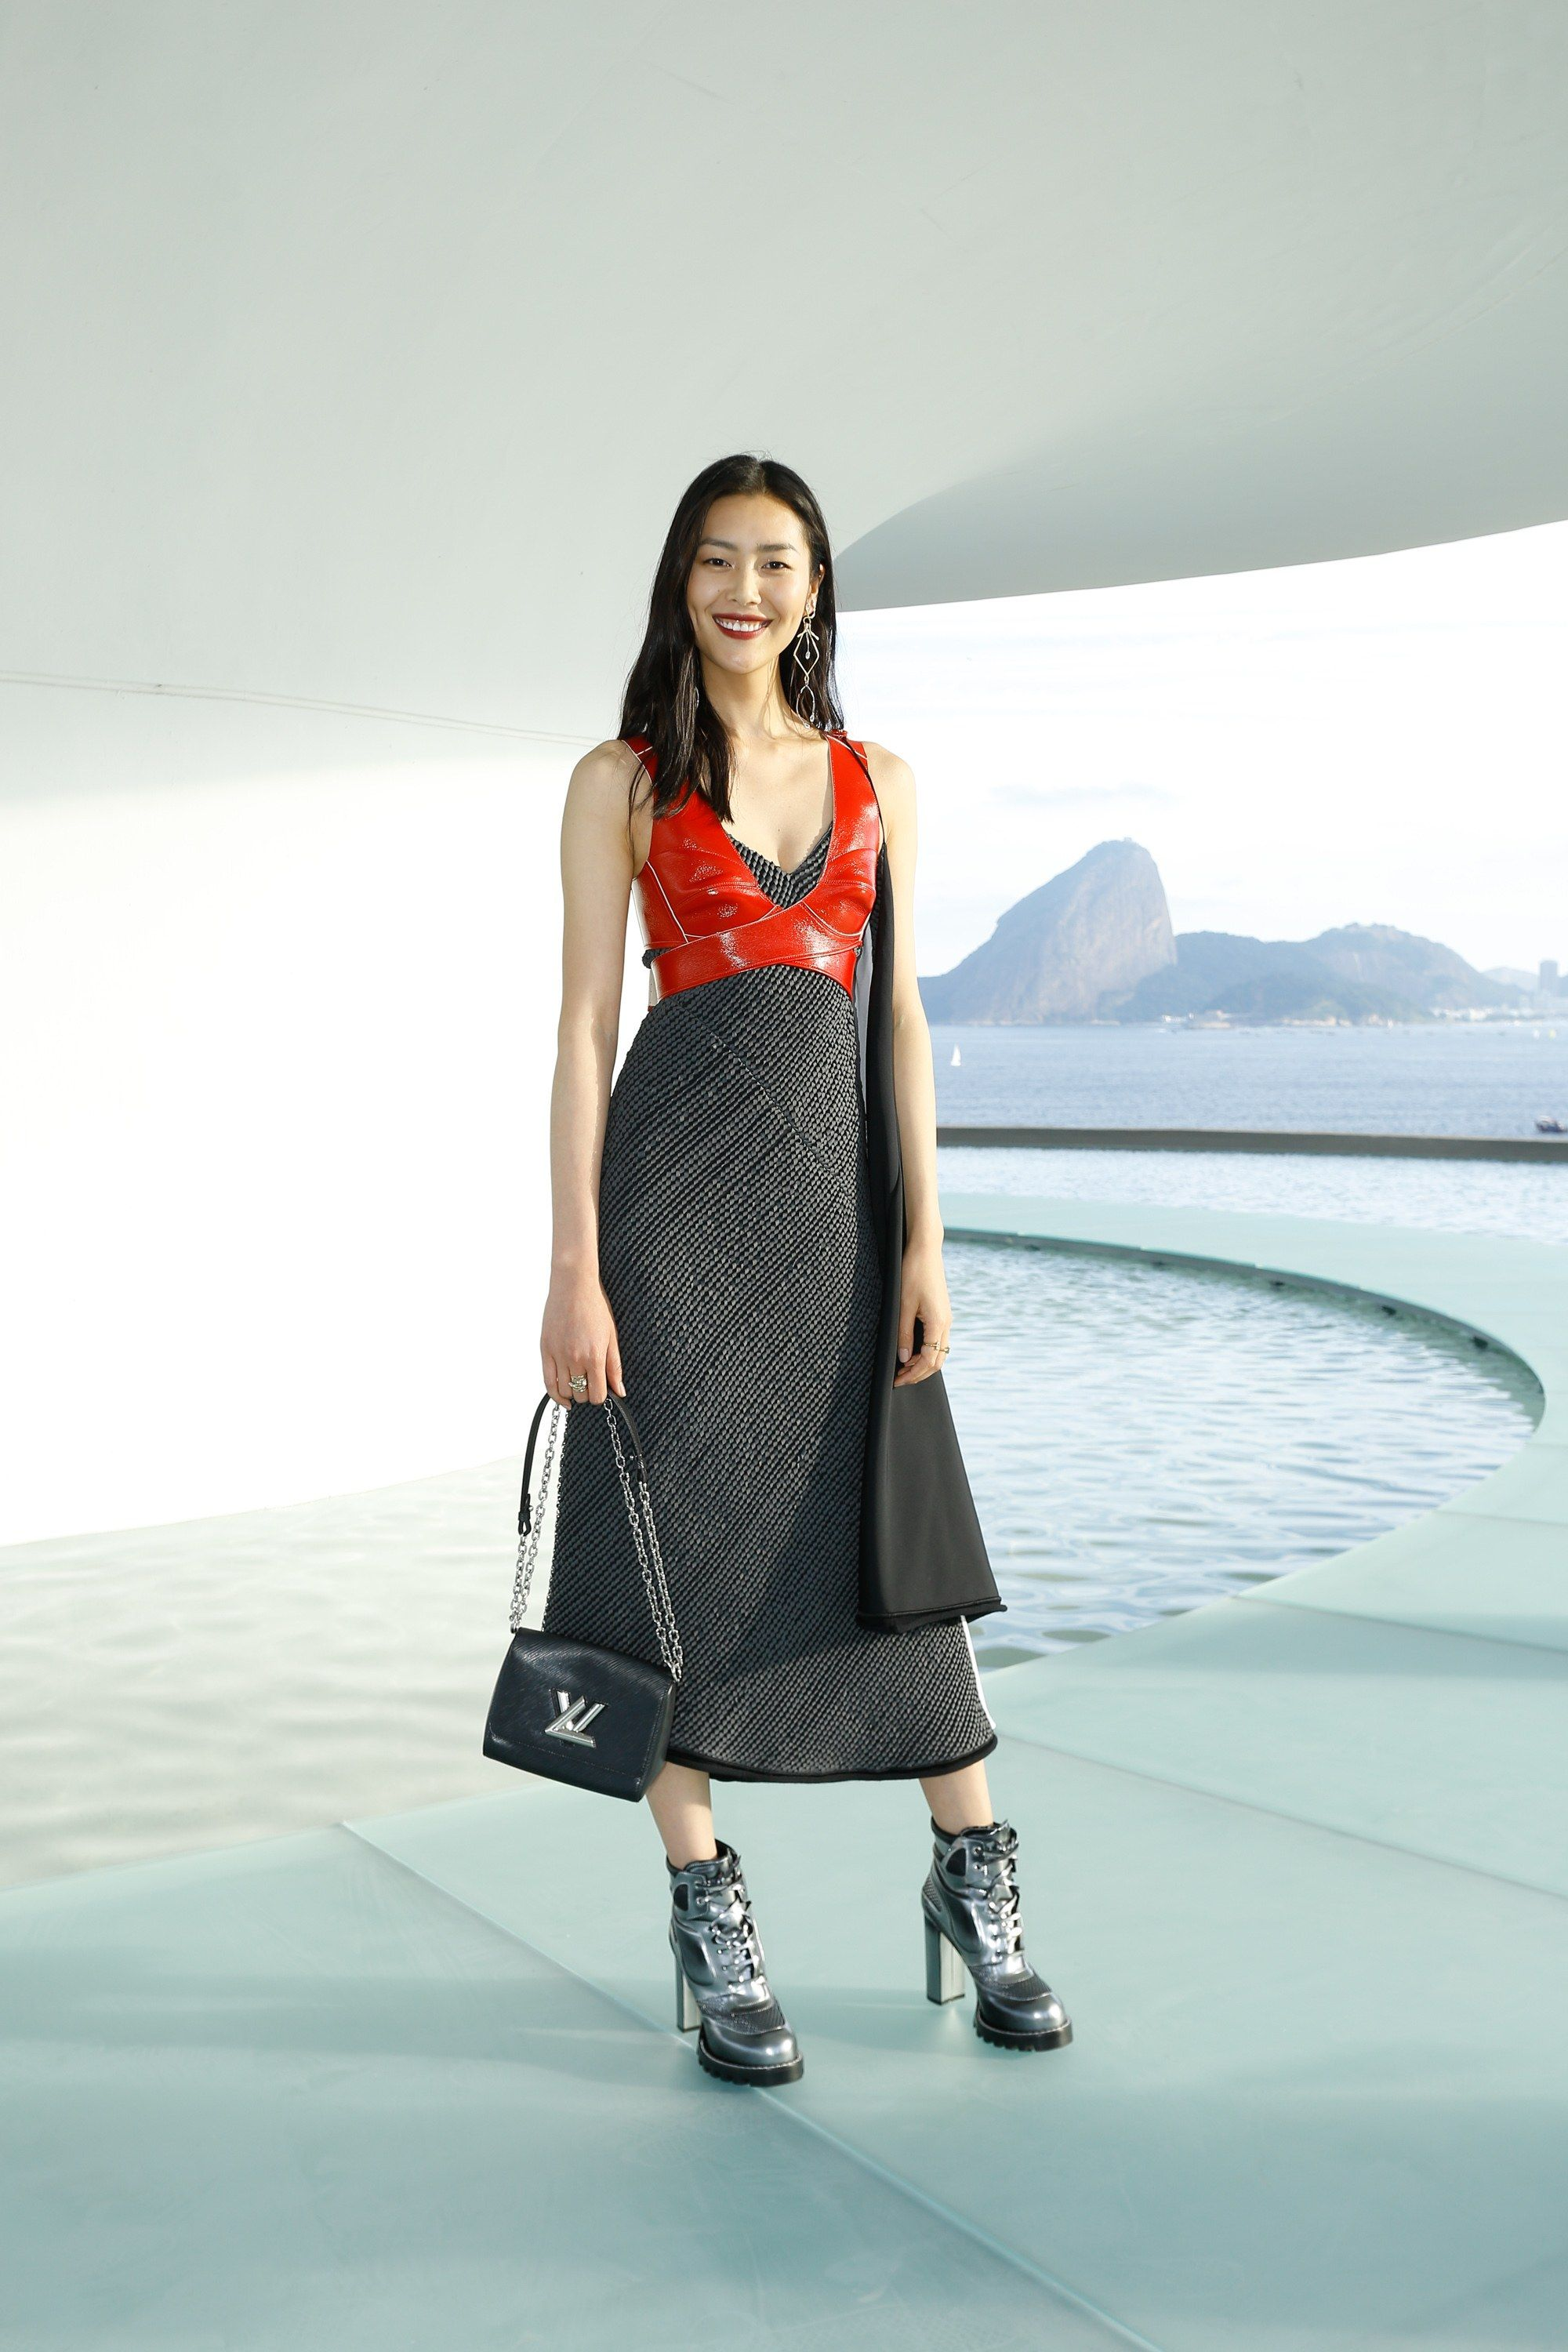 8480d9a4fcfd7 See front row celebrity photos from the Louis Vuitton Resort 2017 fashion  show.